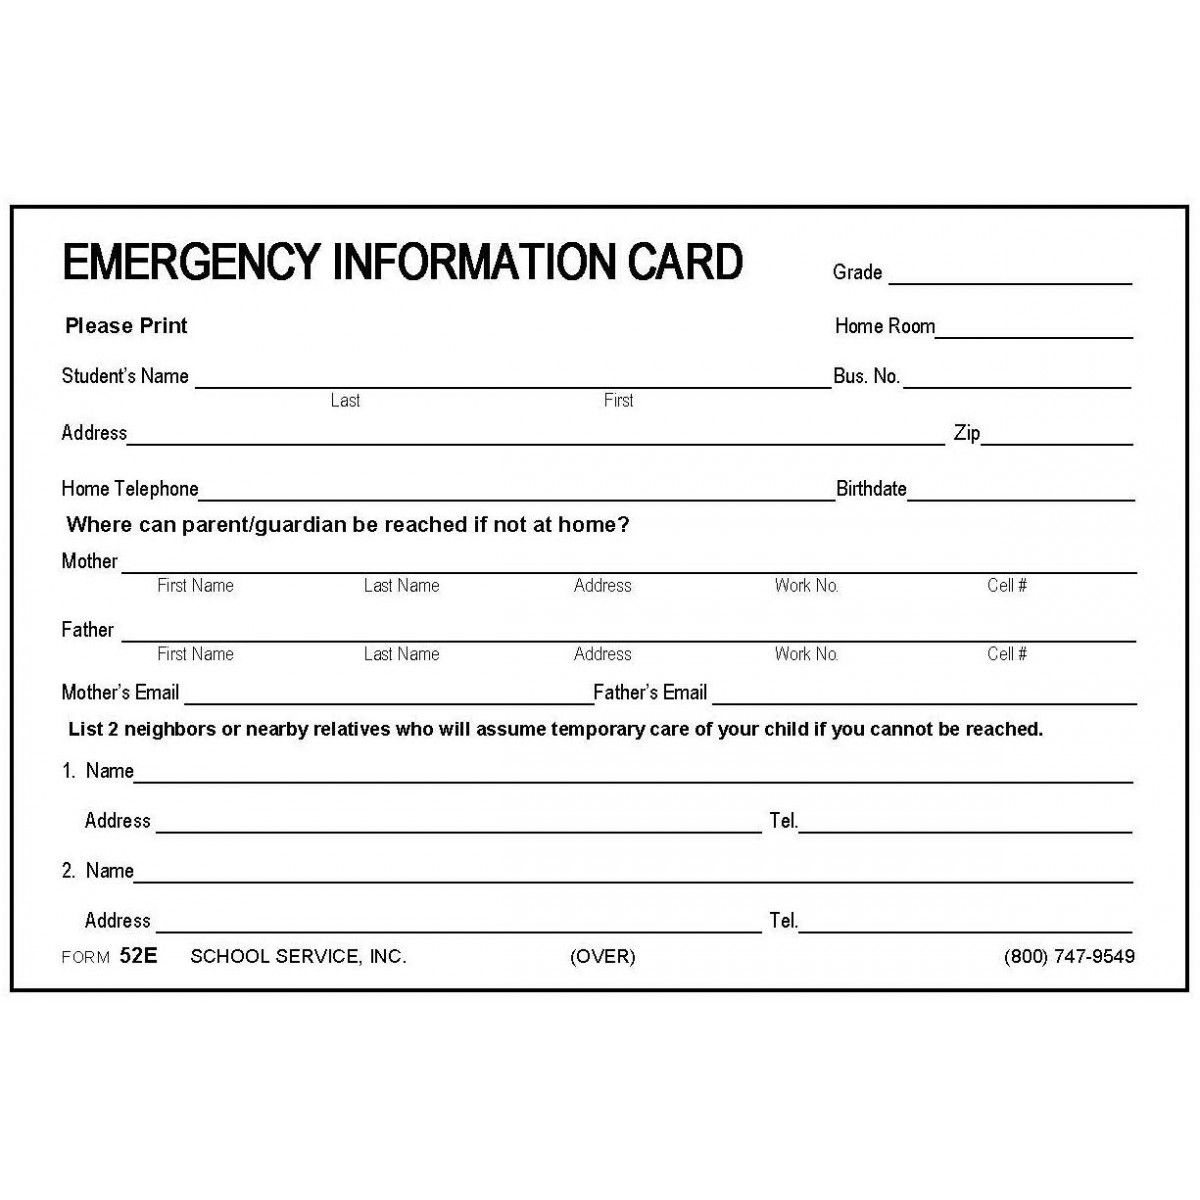 Emergency Contact Information Form Template With Regard To